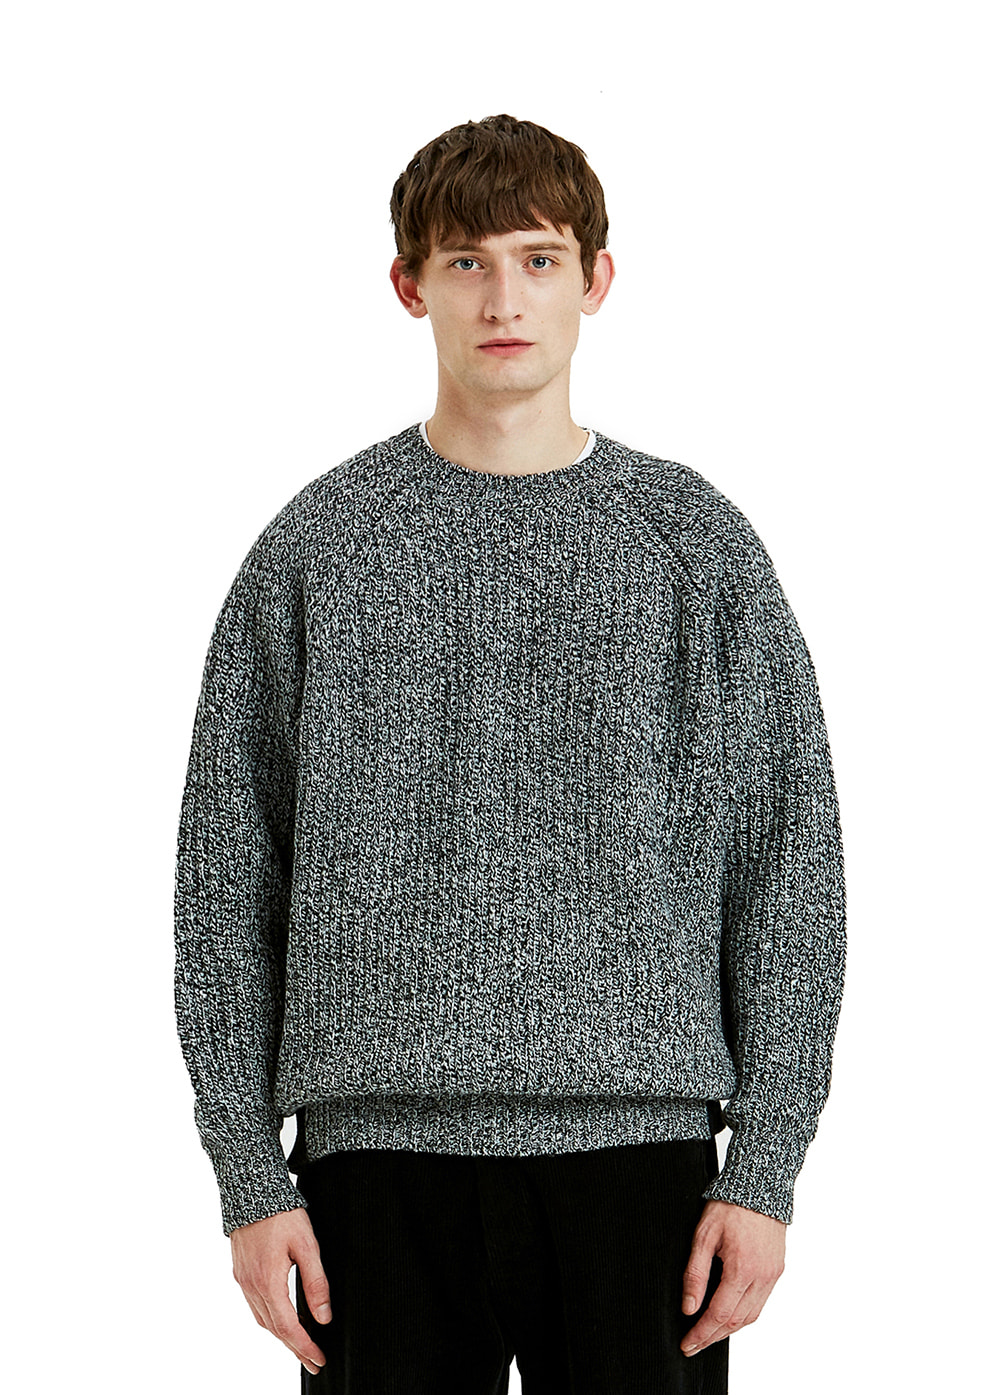 TWO-TONE COLOR BLOCK KNIT SWEATER heather black